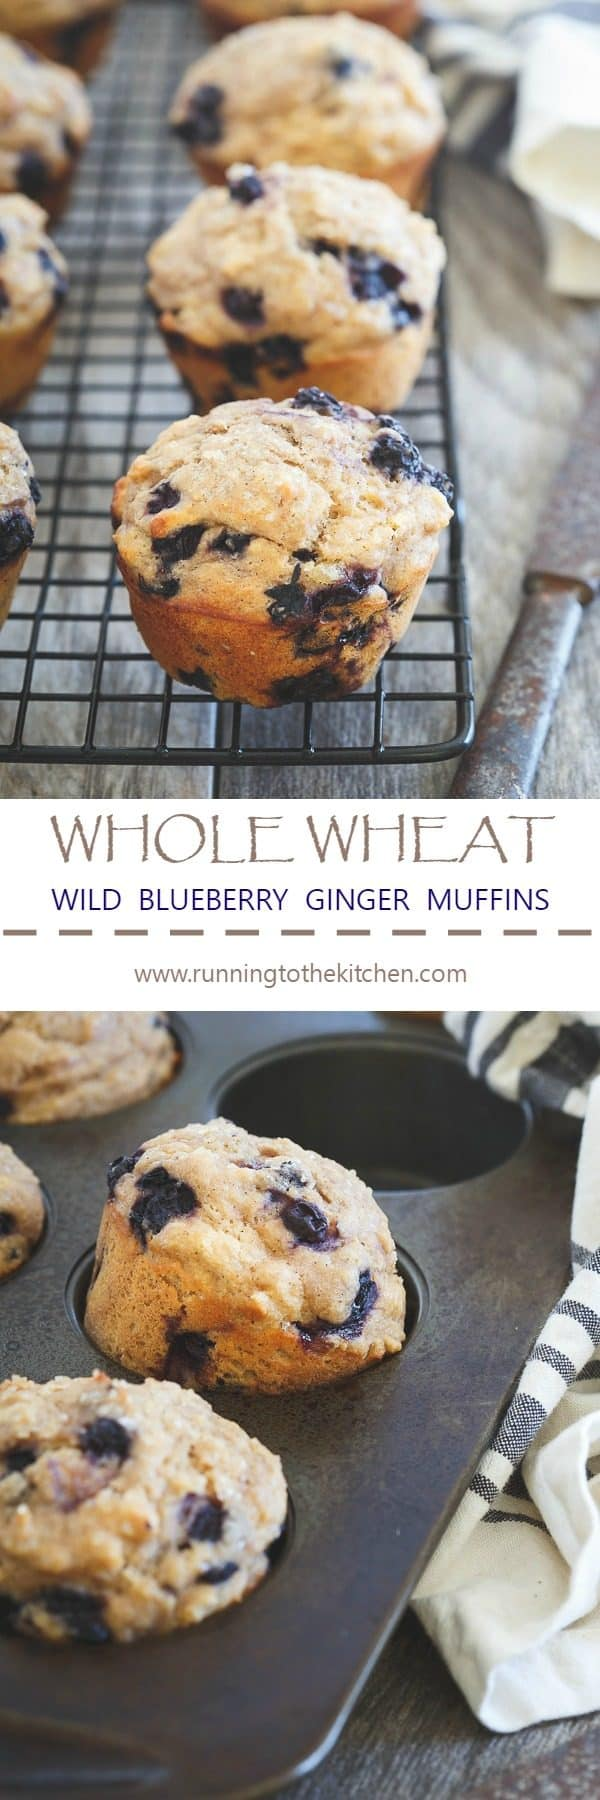 These blueberry ginger muffins are 100% whole wheat and made with wild blueberries and Greek yogurt.